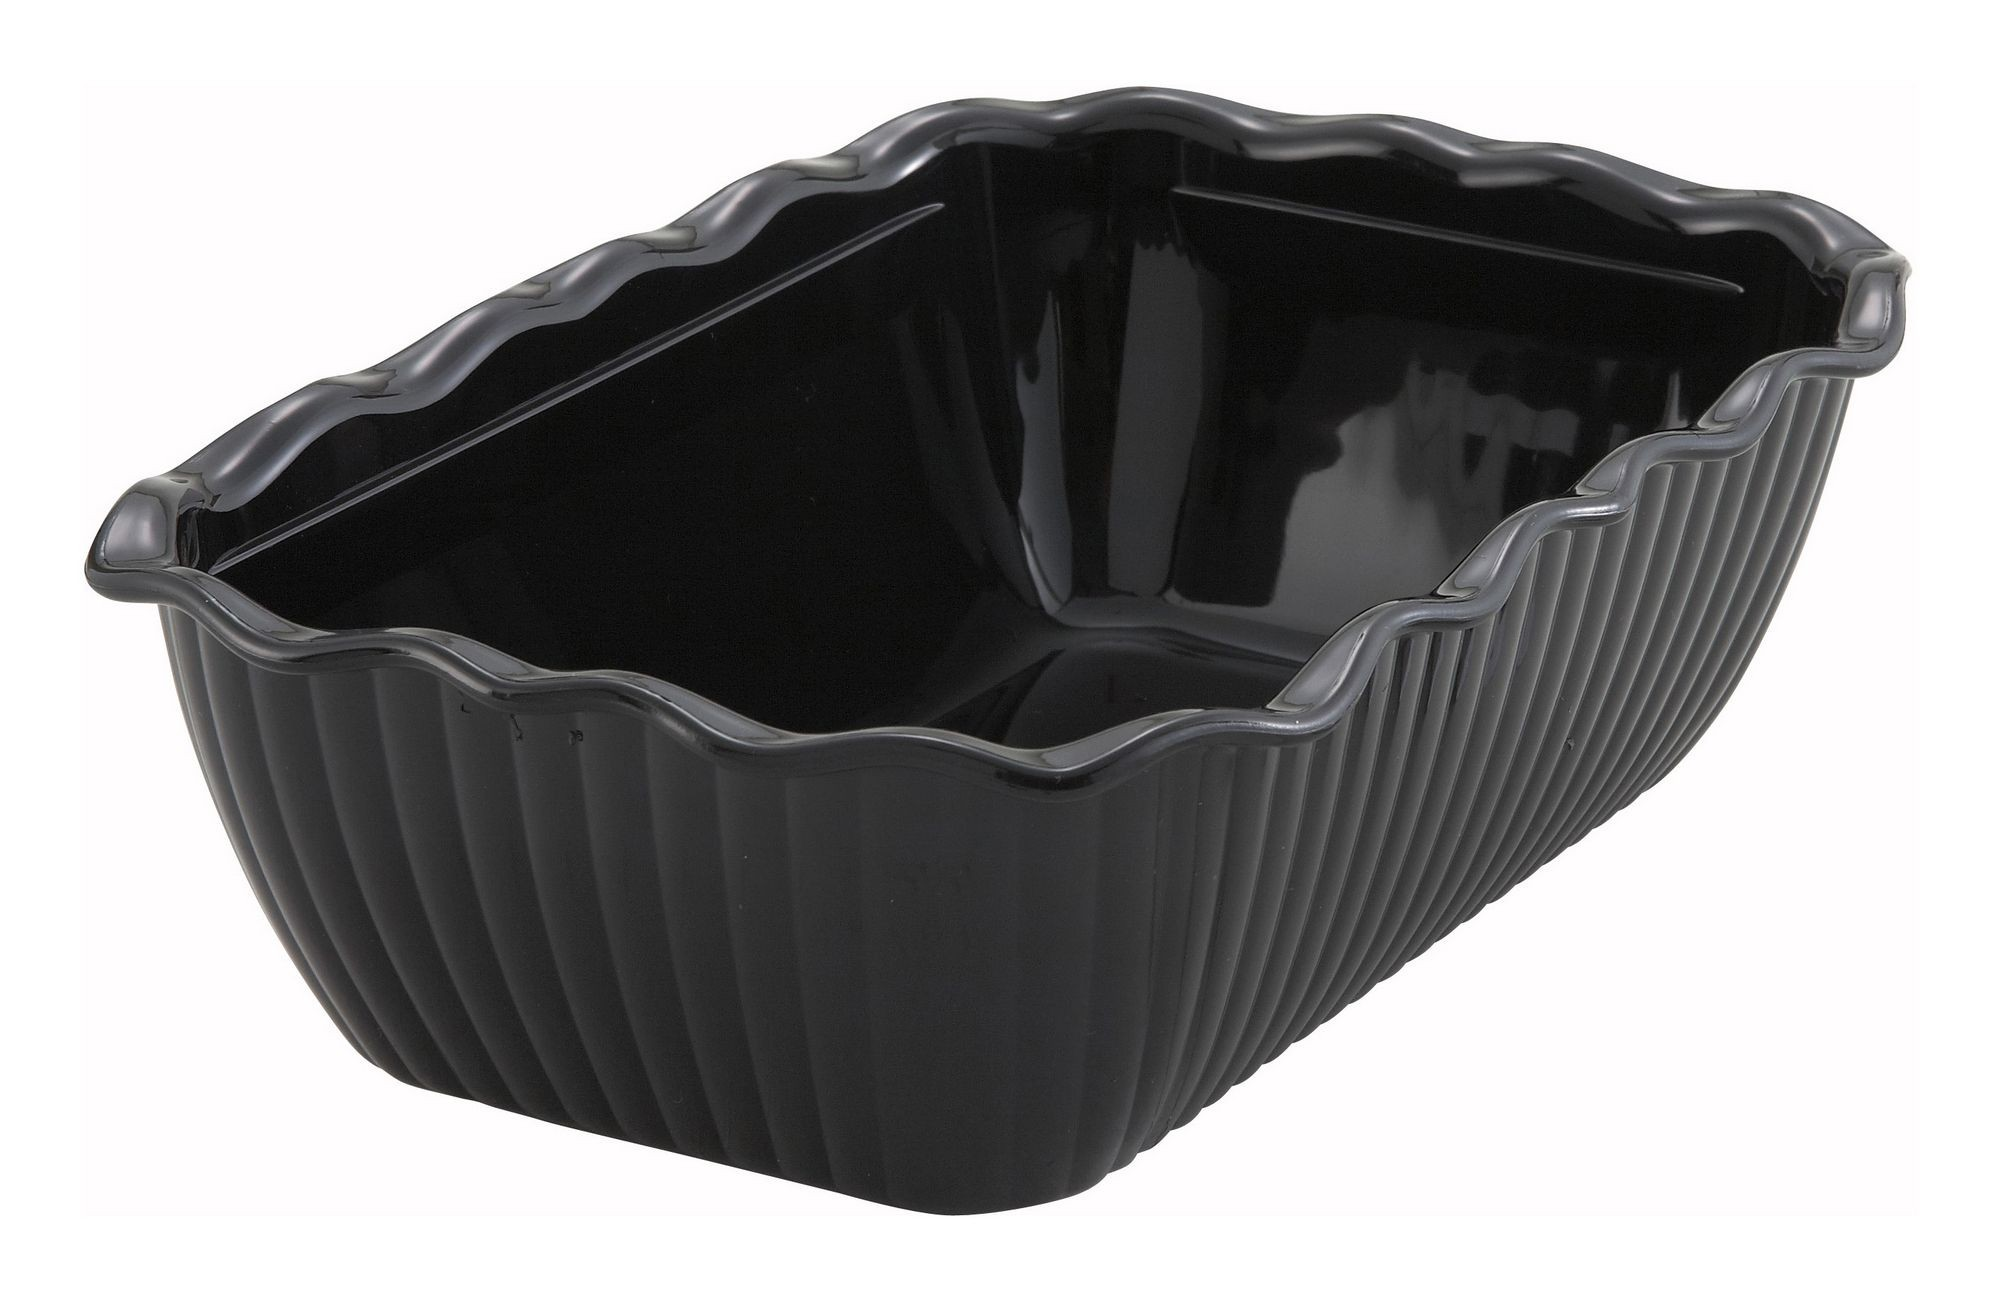 Black-Colored Deli Crock - 10 X 7 X 3 (Cover not included)